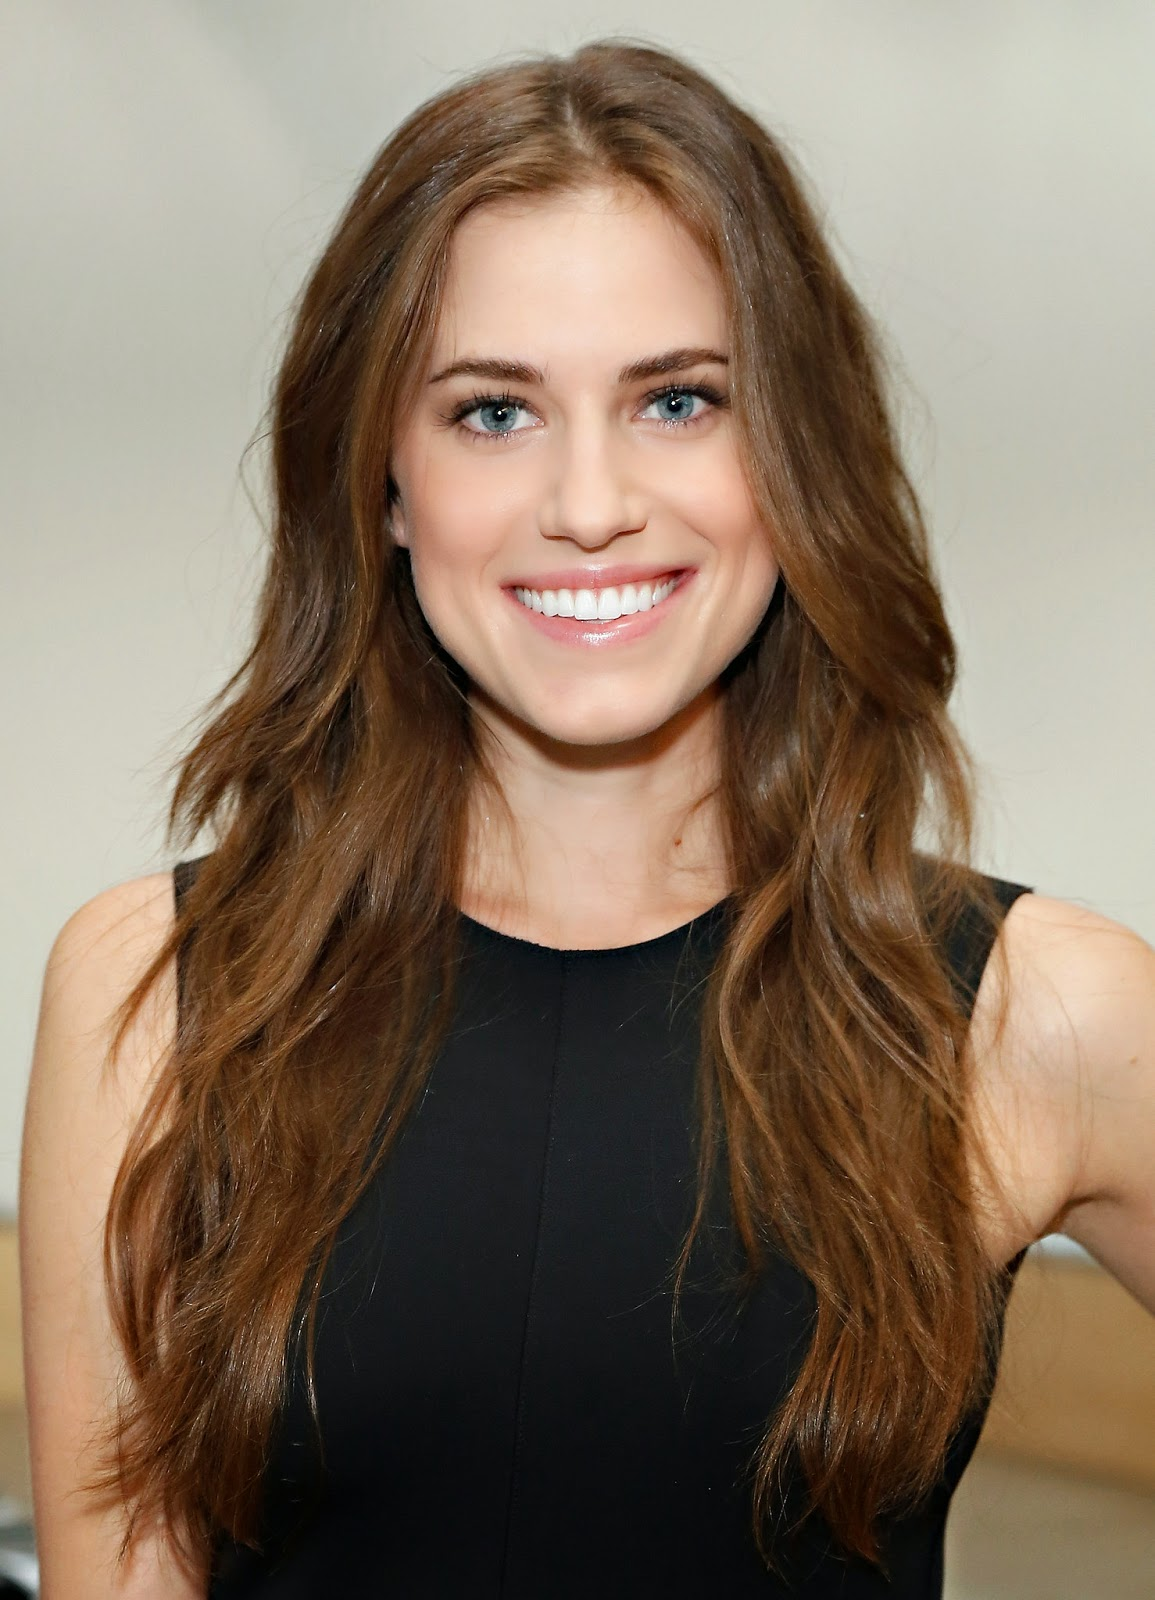 http://www.popsugar.com/beauty/photo-gallery/31582679/image/31757334/Allison-Williams-Reed-Krakoff-Spring-2014